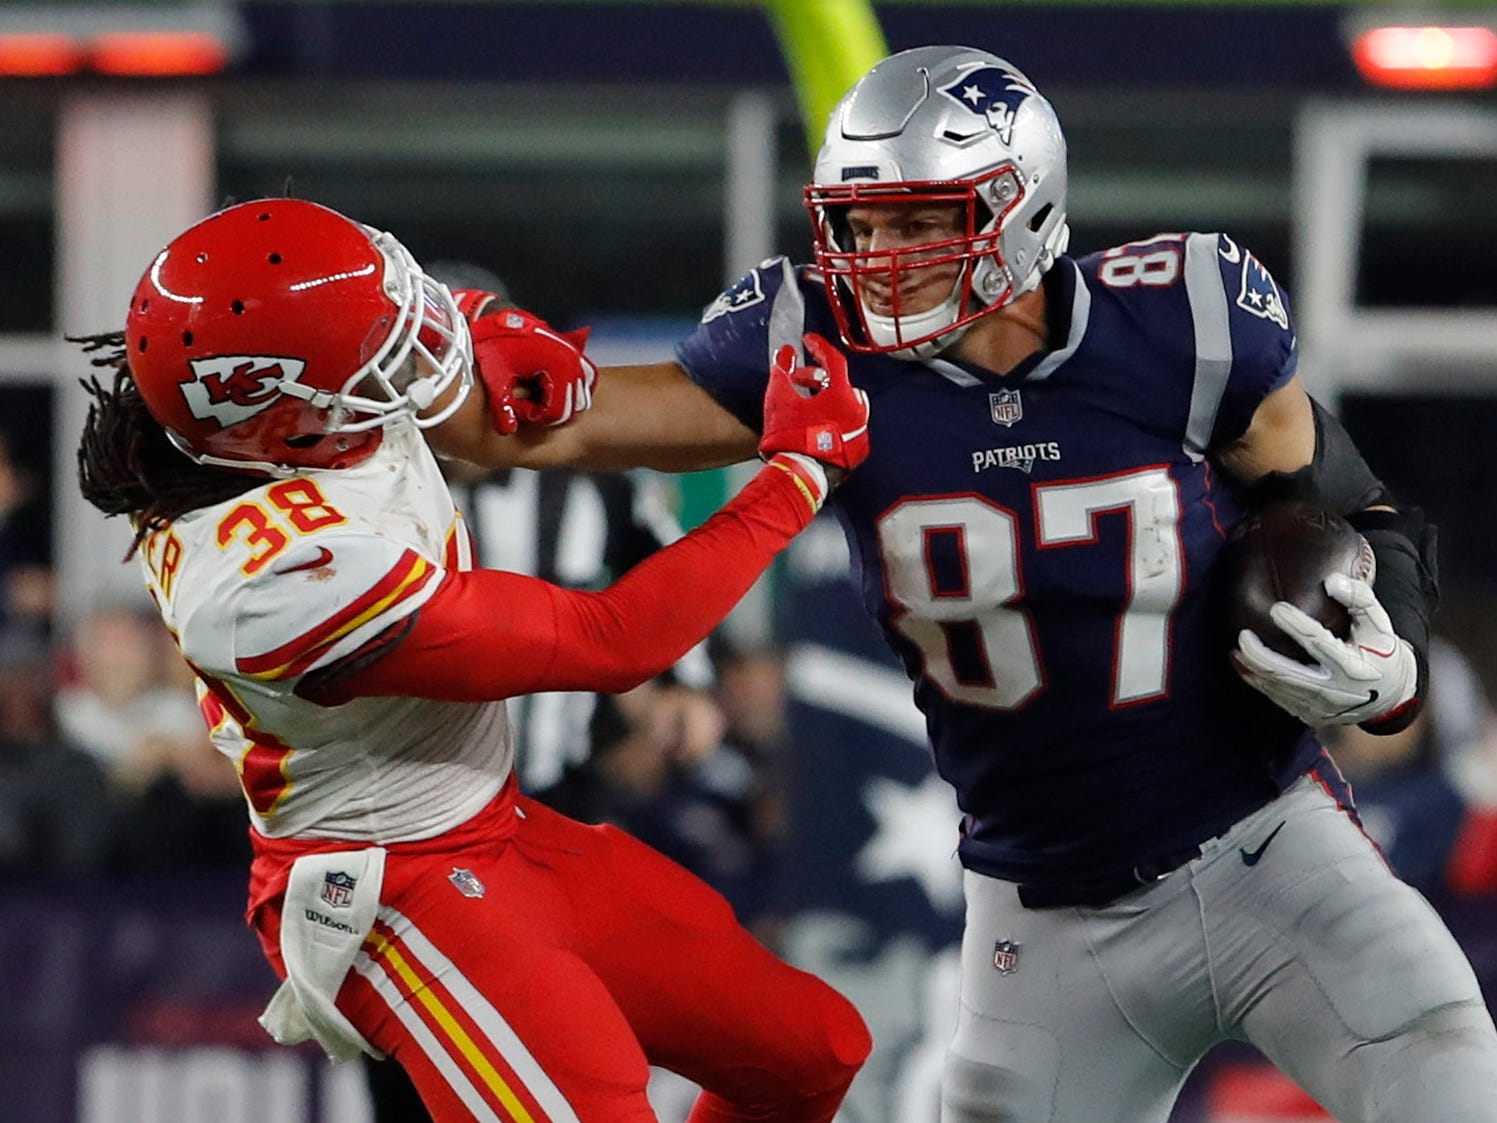 Patriots tight end Rob Gronkowski makes a catch and stiff arms Kansas City Chiefs free safety Ron Parker in the second half at Gillette Stadium.